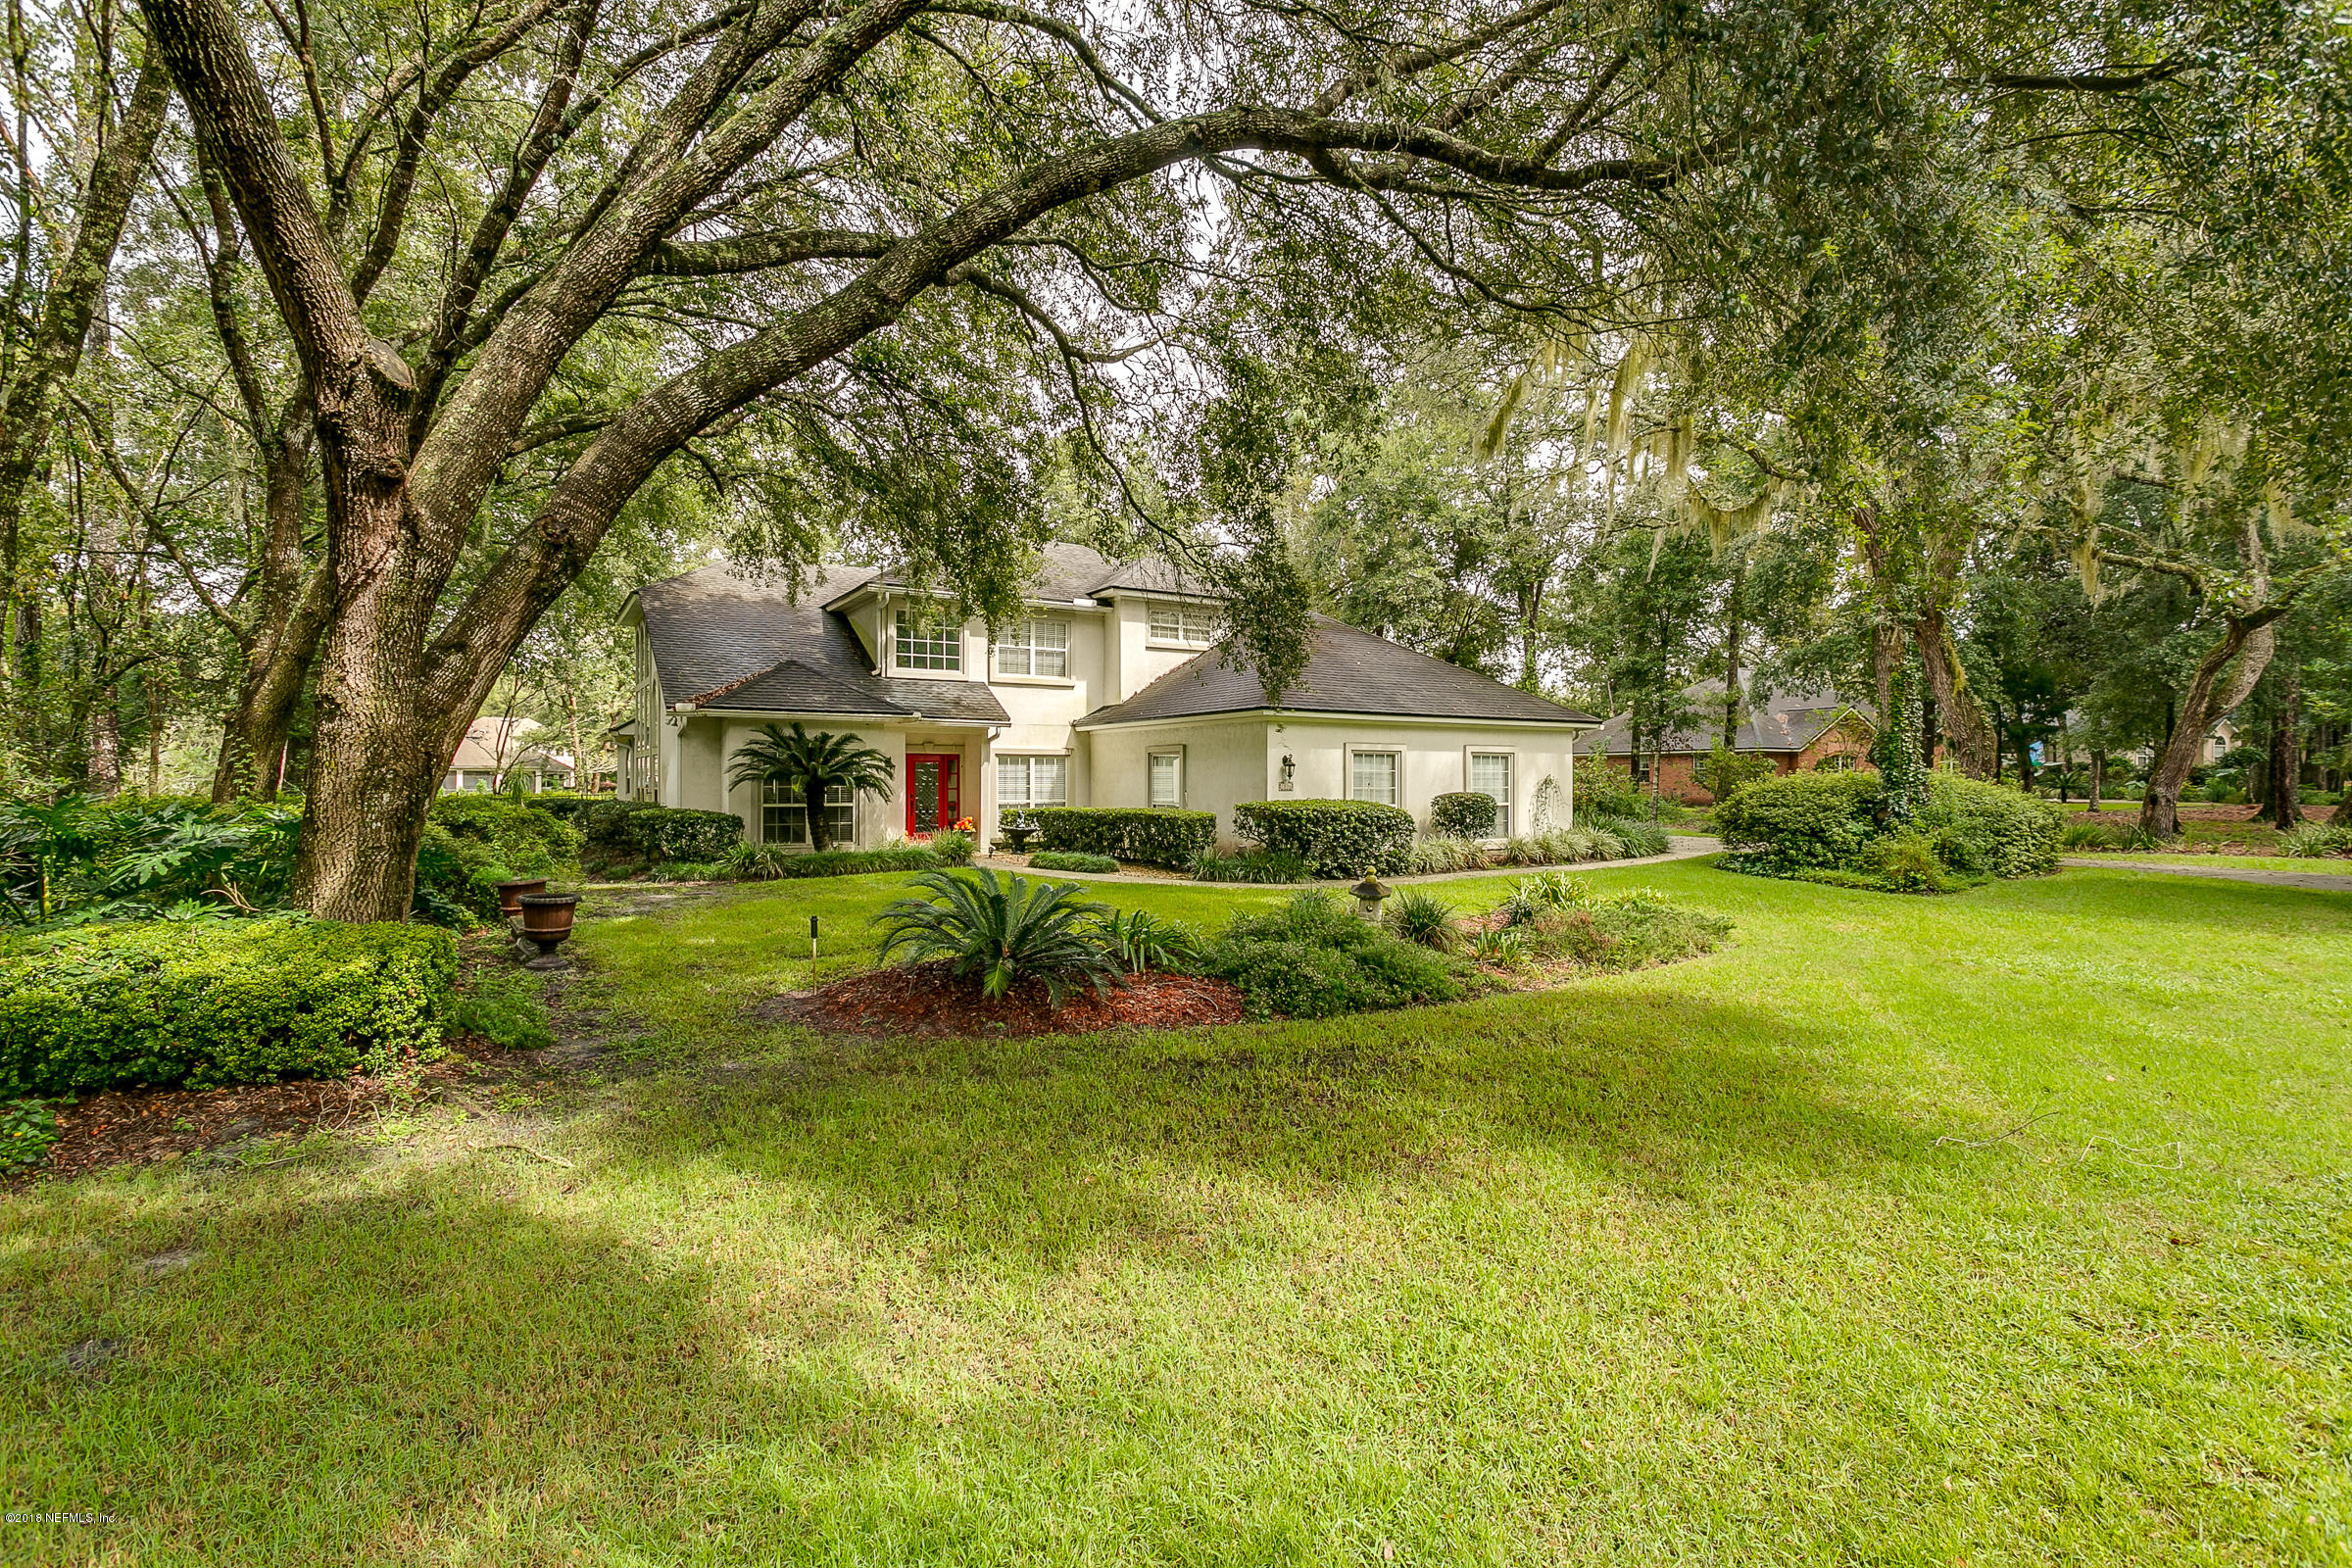 1856 COLONIAL, GREEN COVE SPRINGS, FLORIDA 32043, 3 Bedrooms Bedrooms, ,3 BathroomsBathrooms,Residential - single family,For sale,COLONIAL,962074